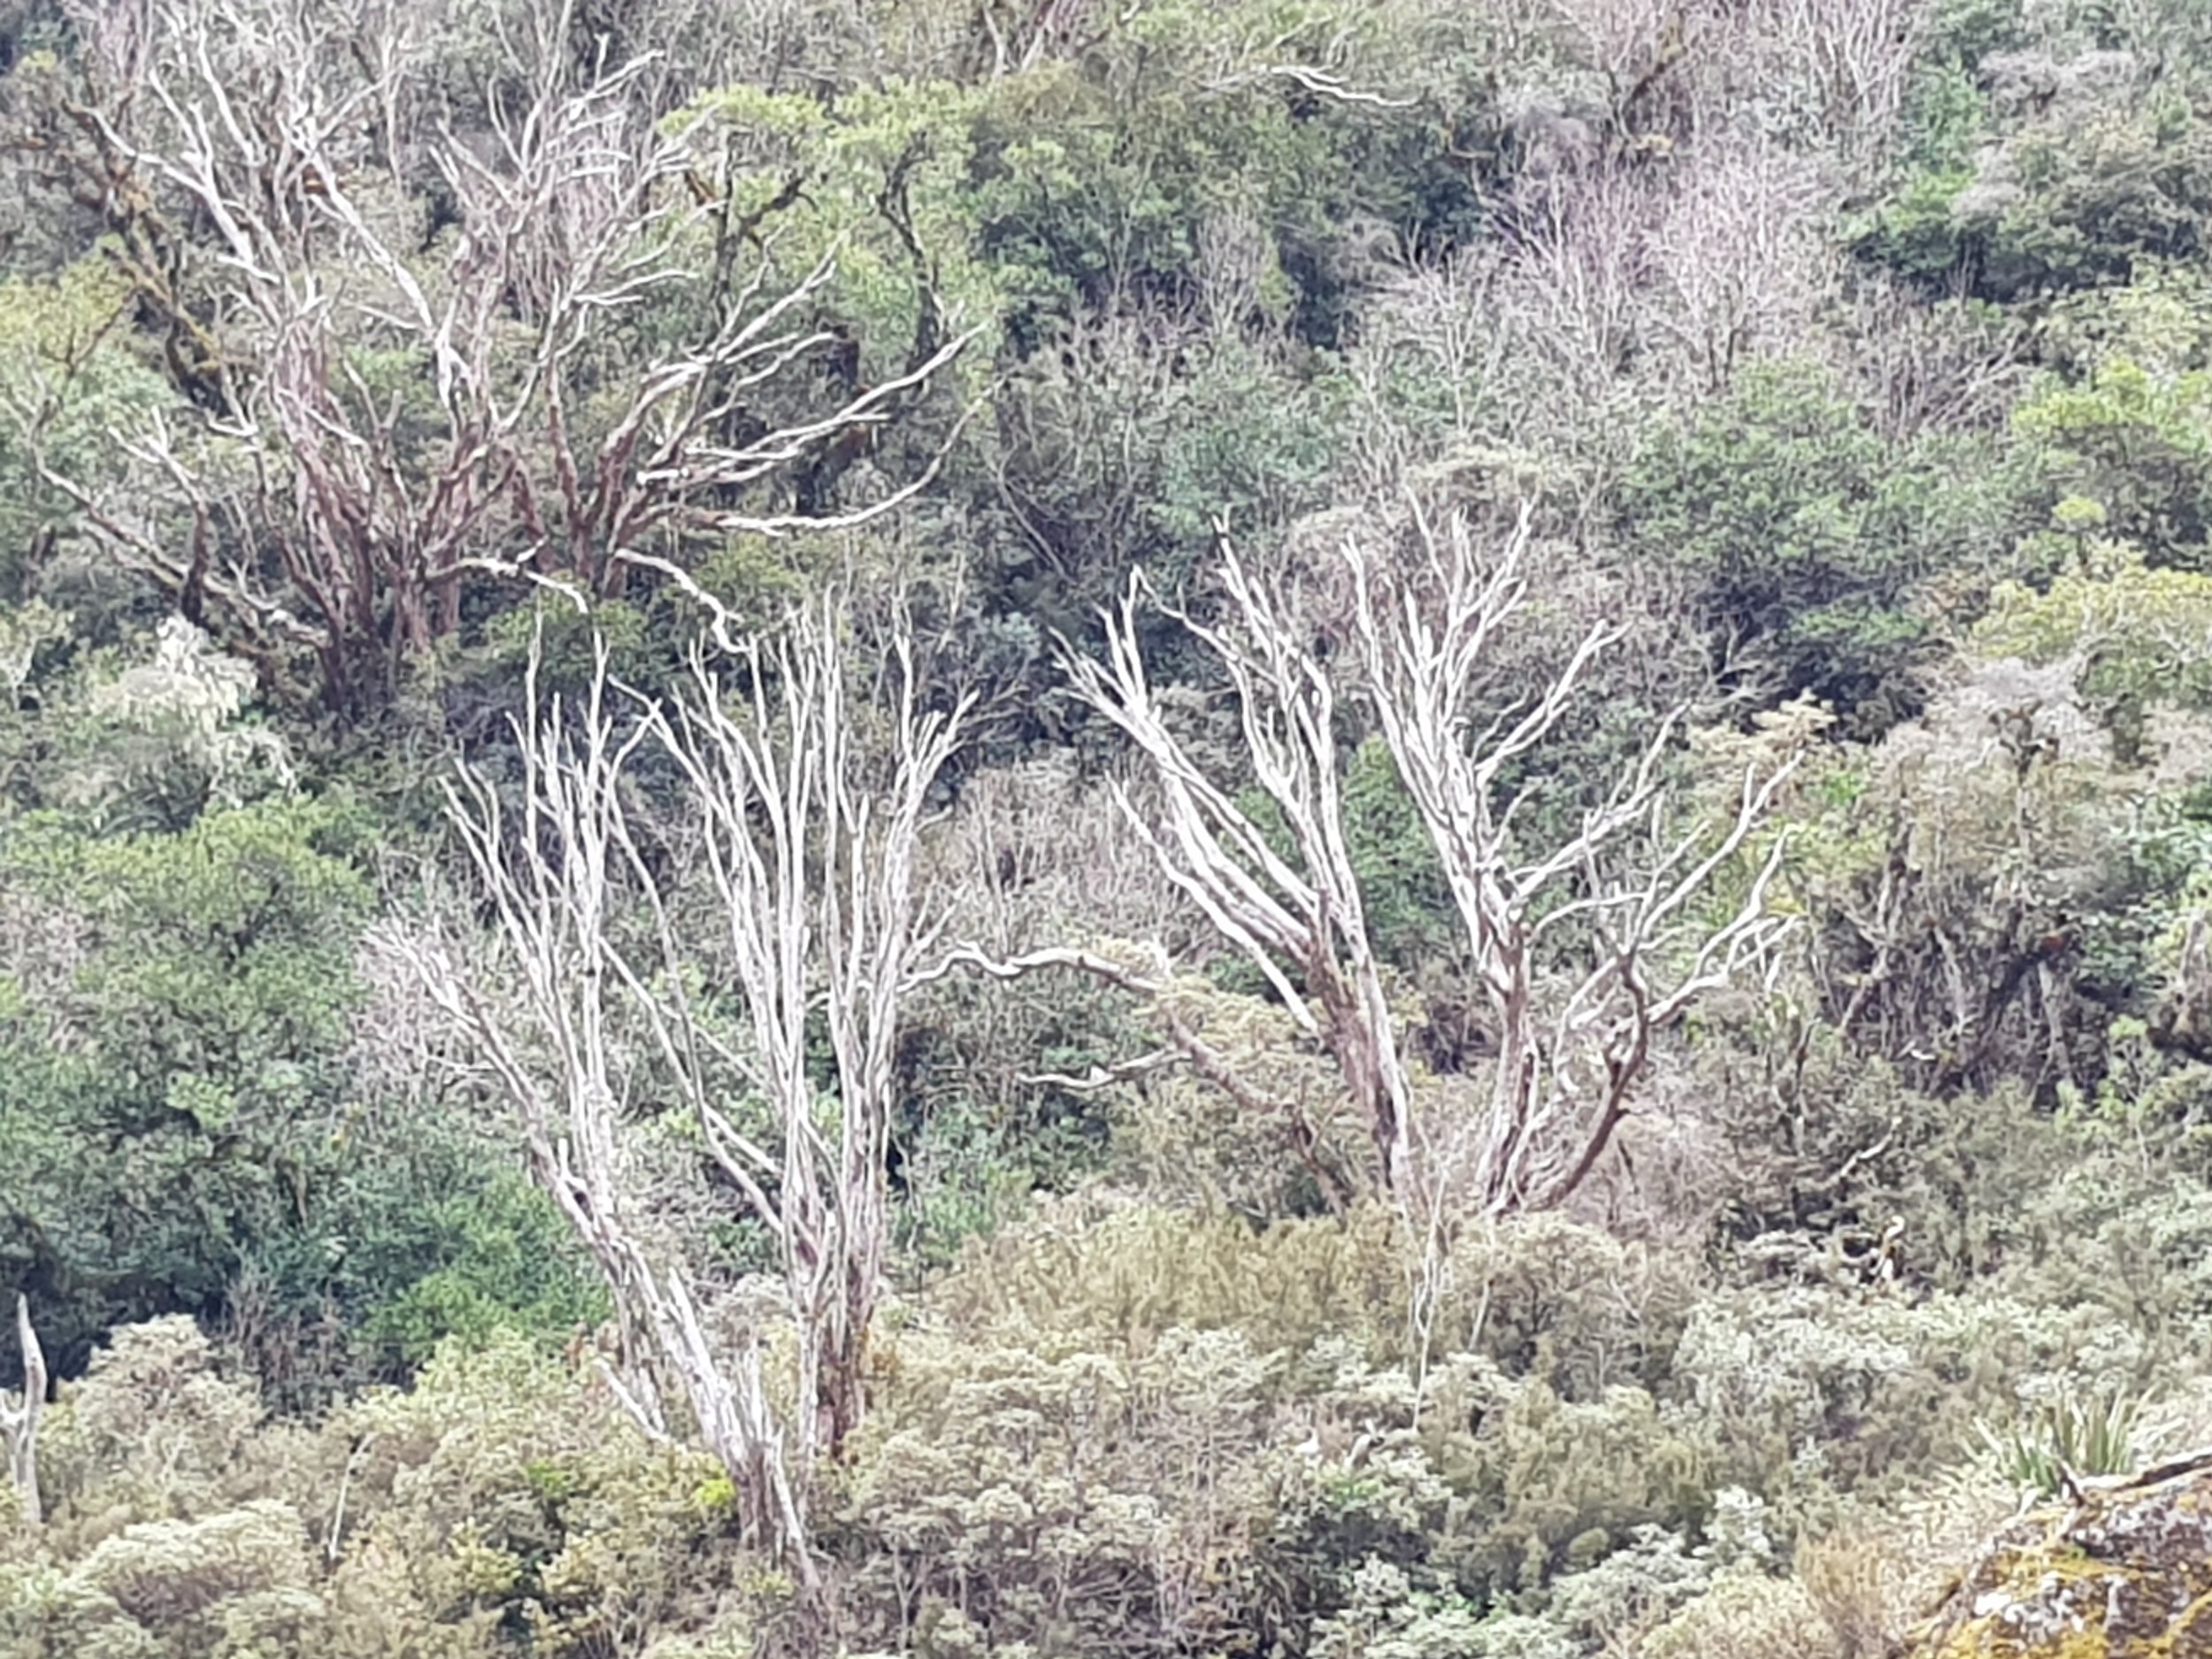 Possum browse on rata in the research area, Dec 2017